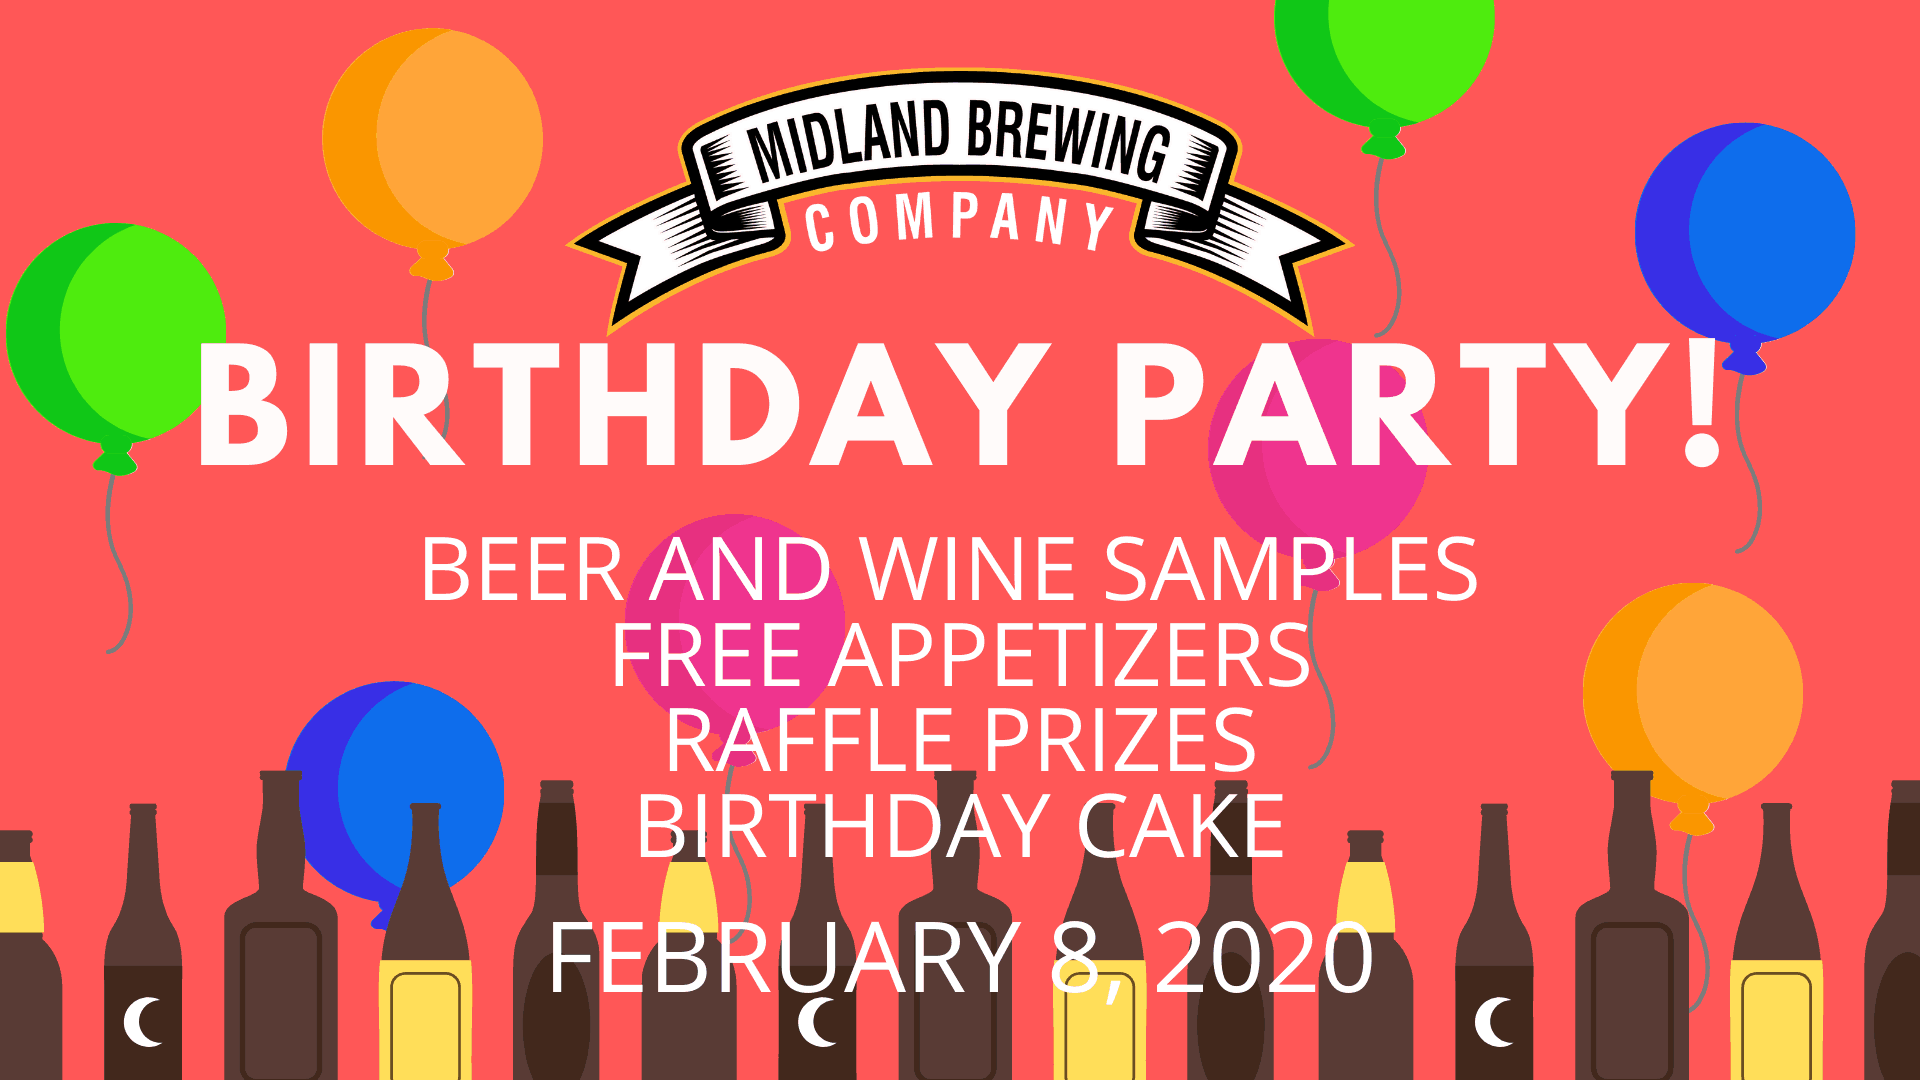 Midland Brewing Company is turning 3 on February 8th, 2020! Join us for beer and wine samples, birthday cake, brewery tours and prizes!